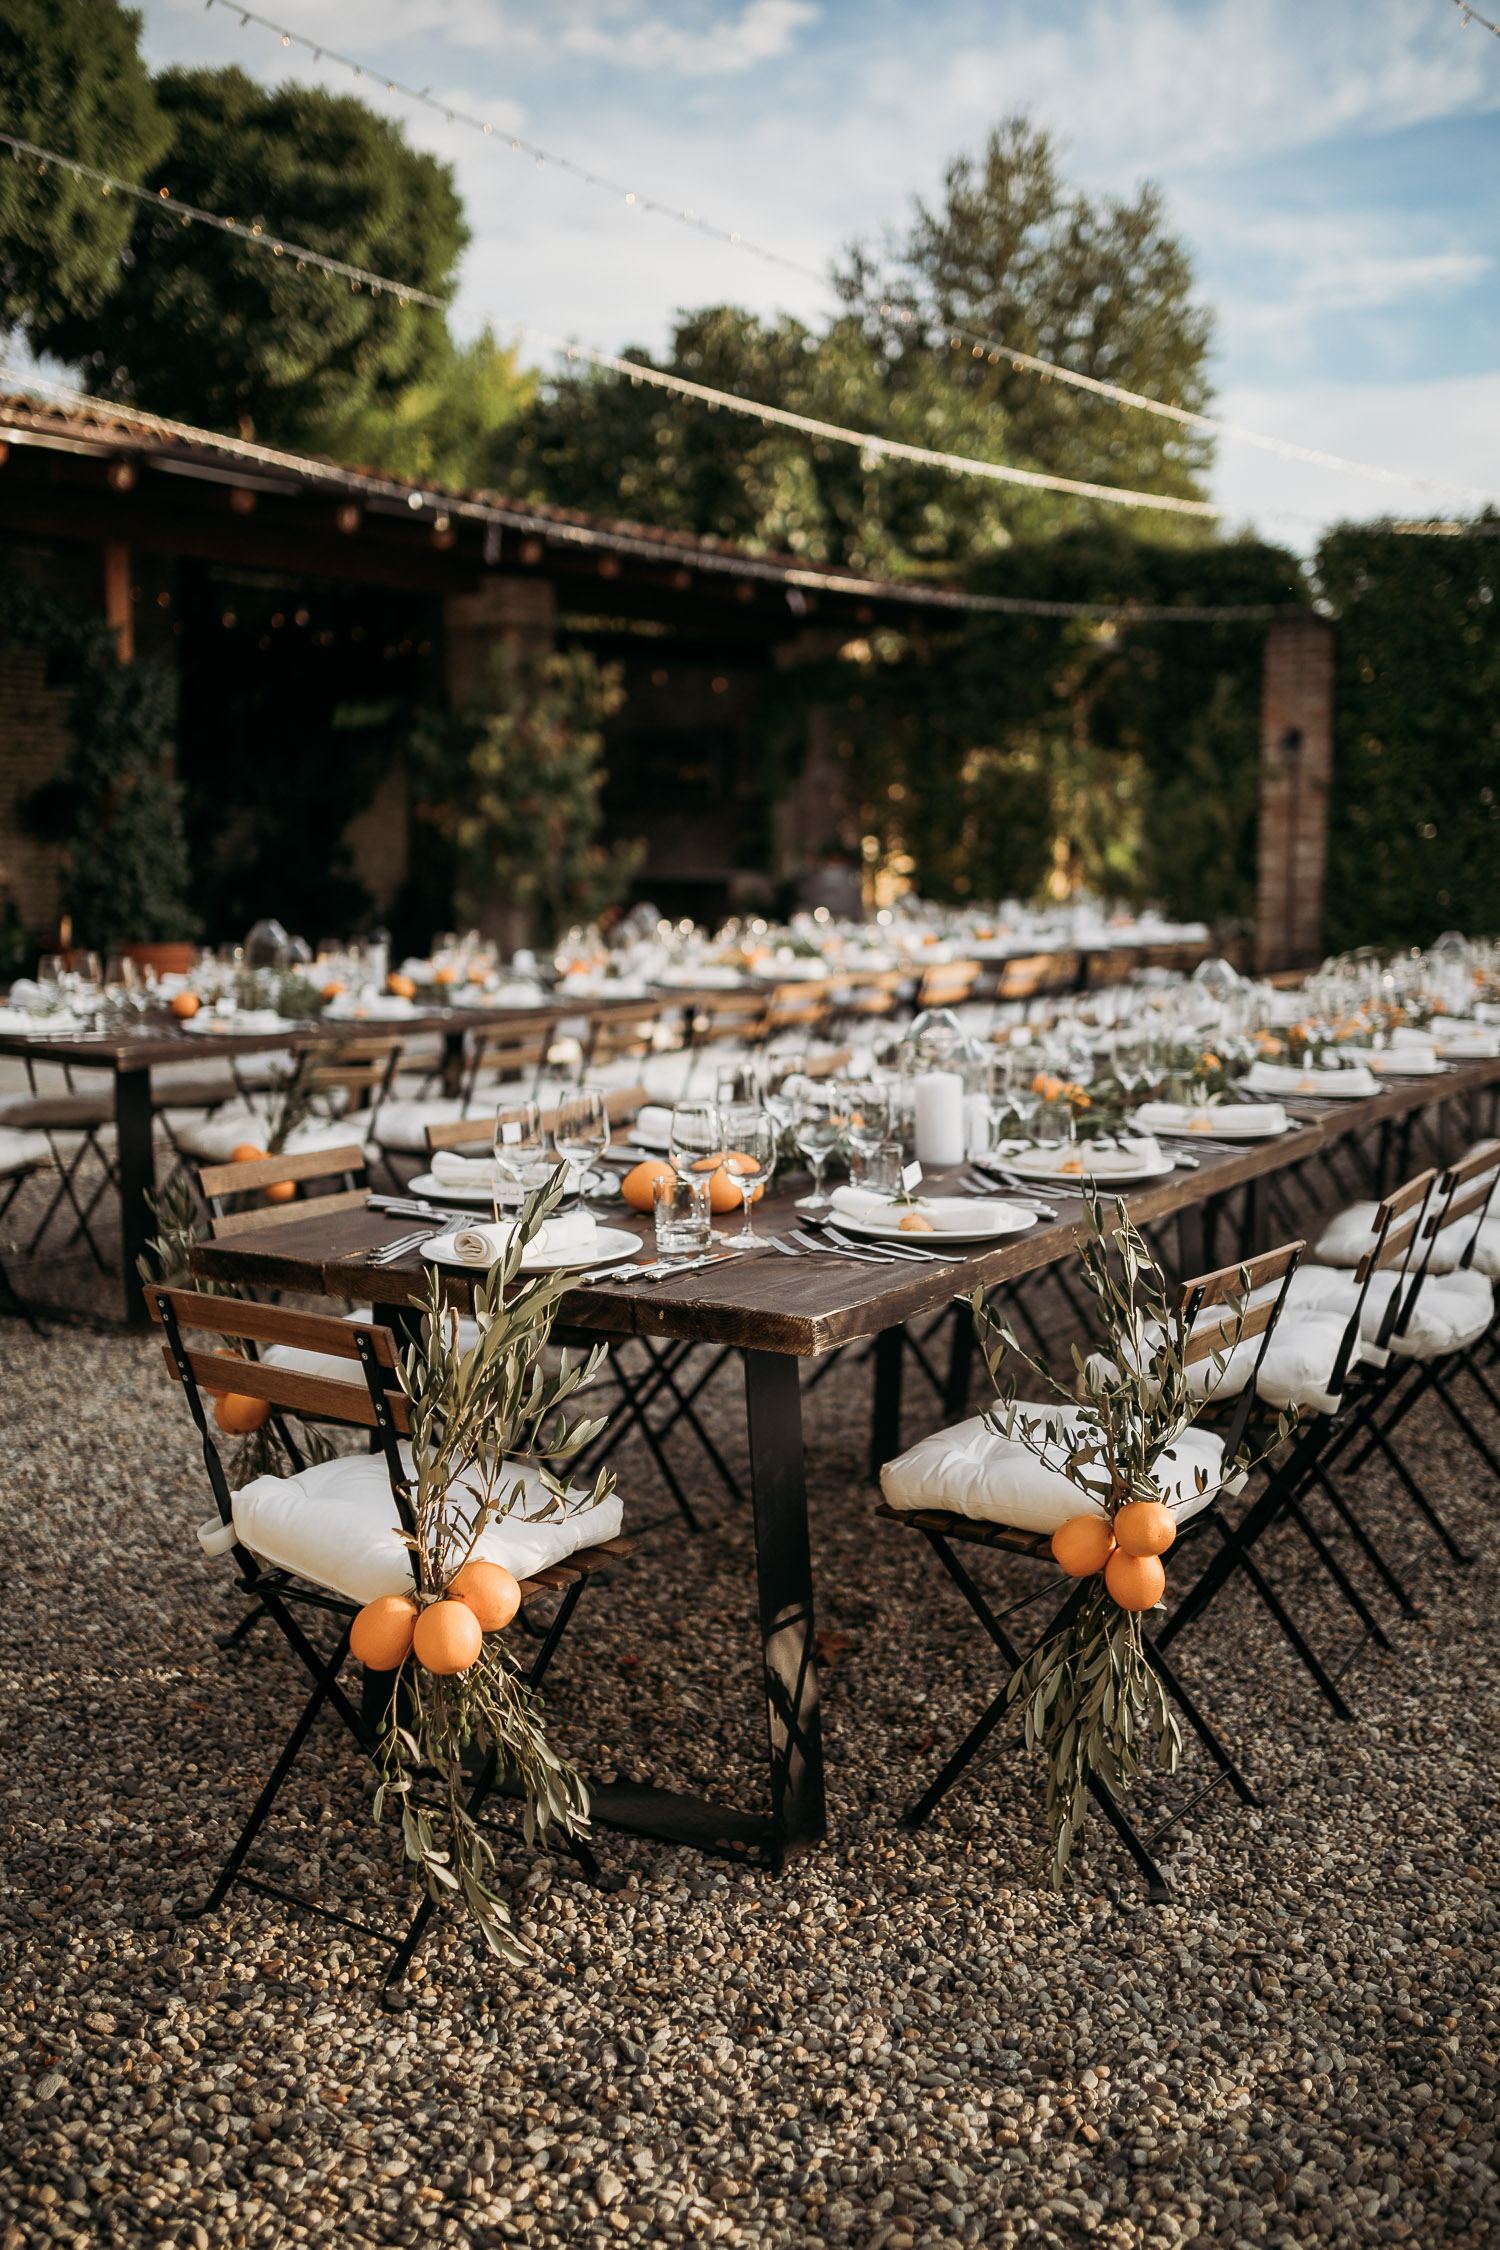 Table setting rustic and italian with oranges and olives branch